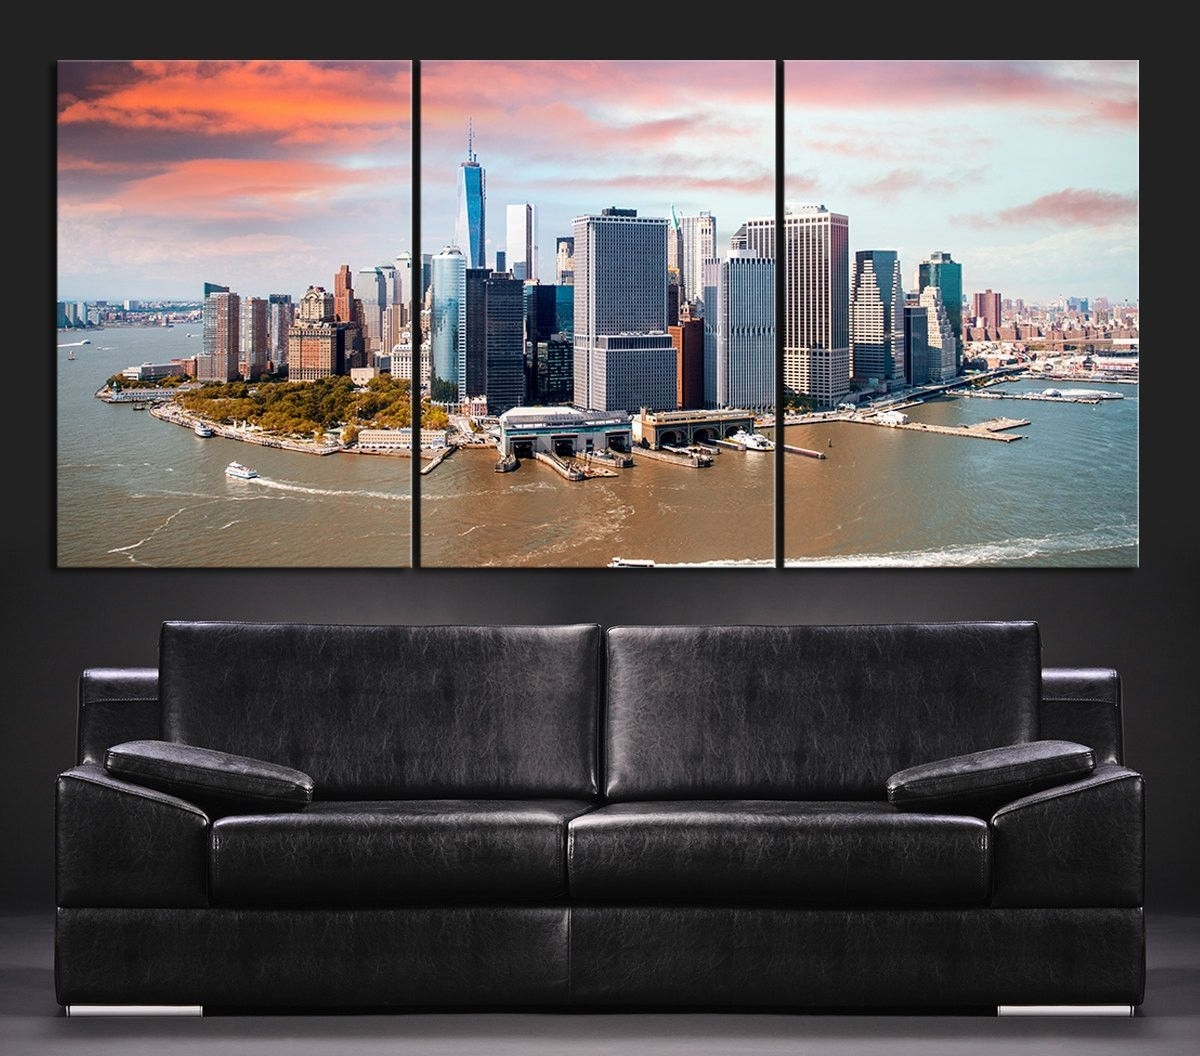 Large Wall Art Canvas Print + Skyline Panorama New York Manhattan Pertaining To Most Recently Released Murals Canvas Wall Art (Gallery 3 of 15)